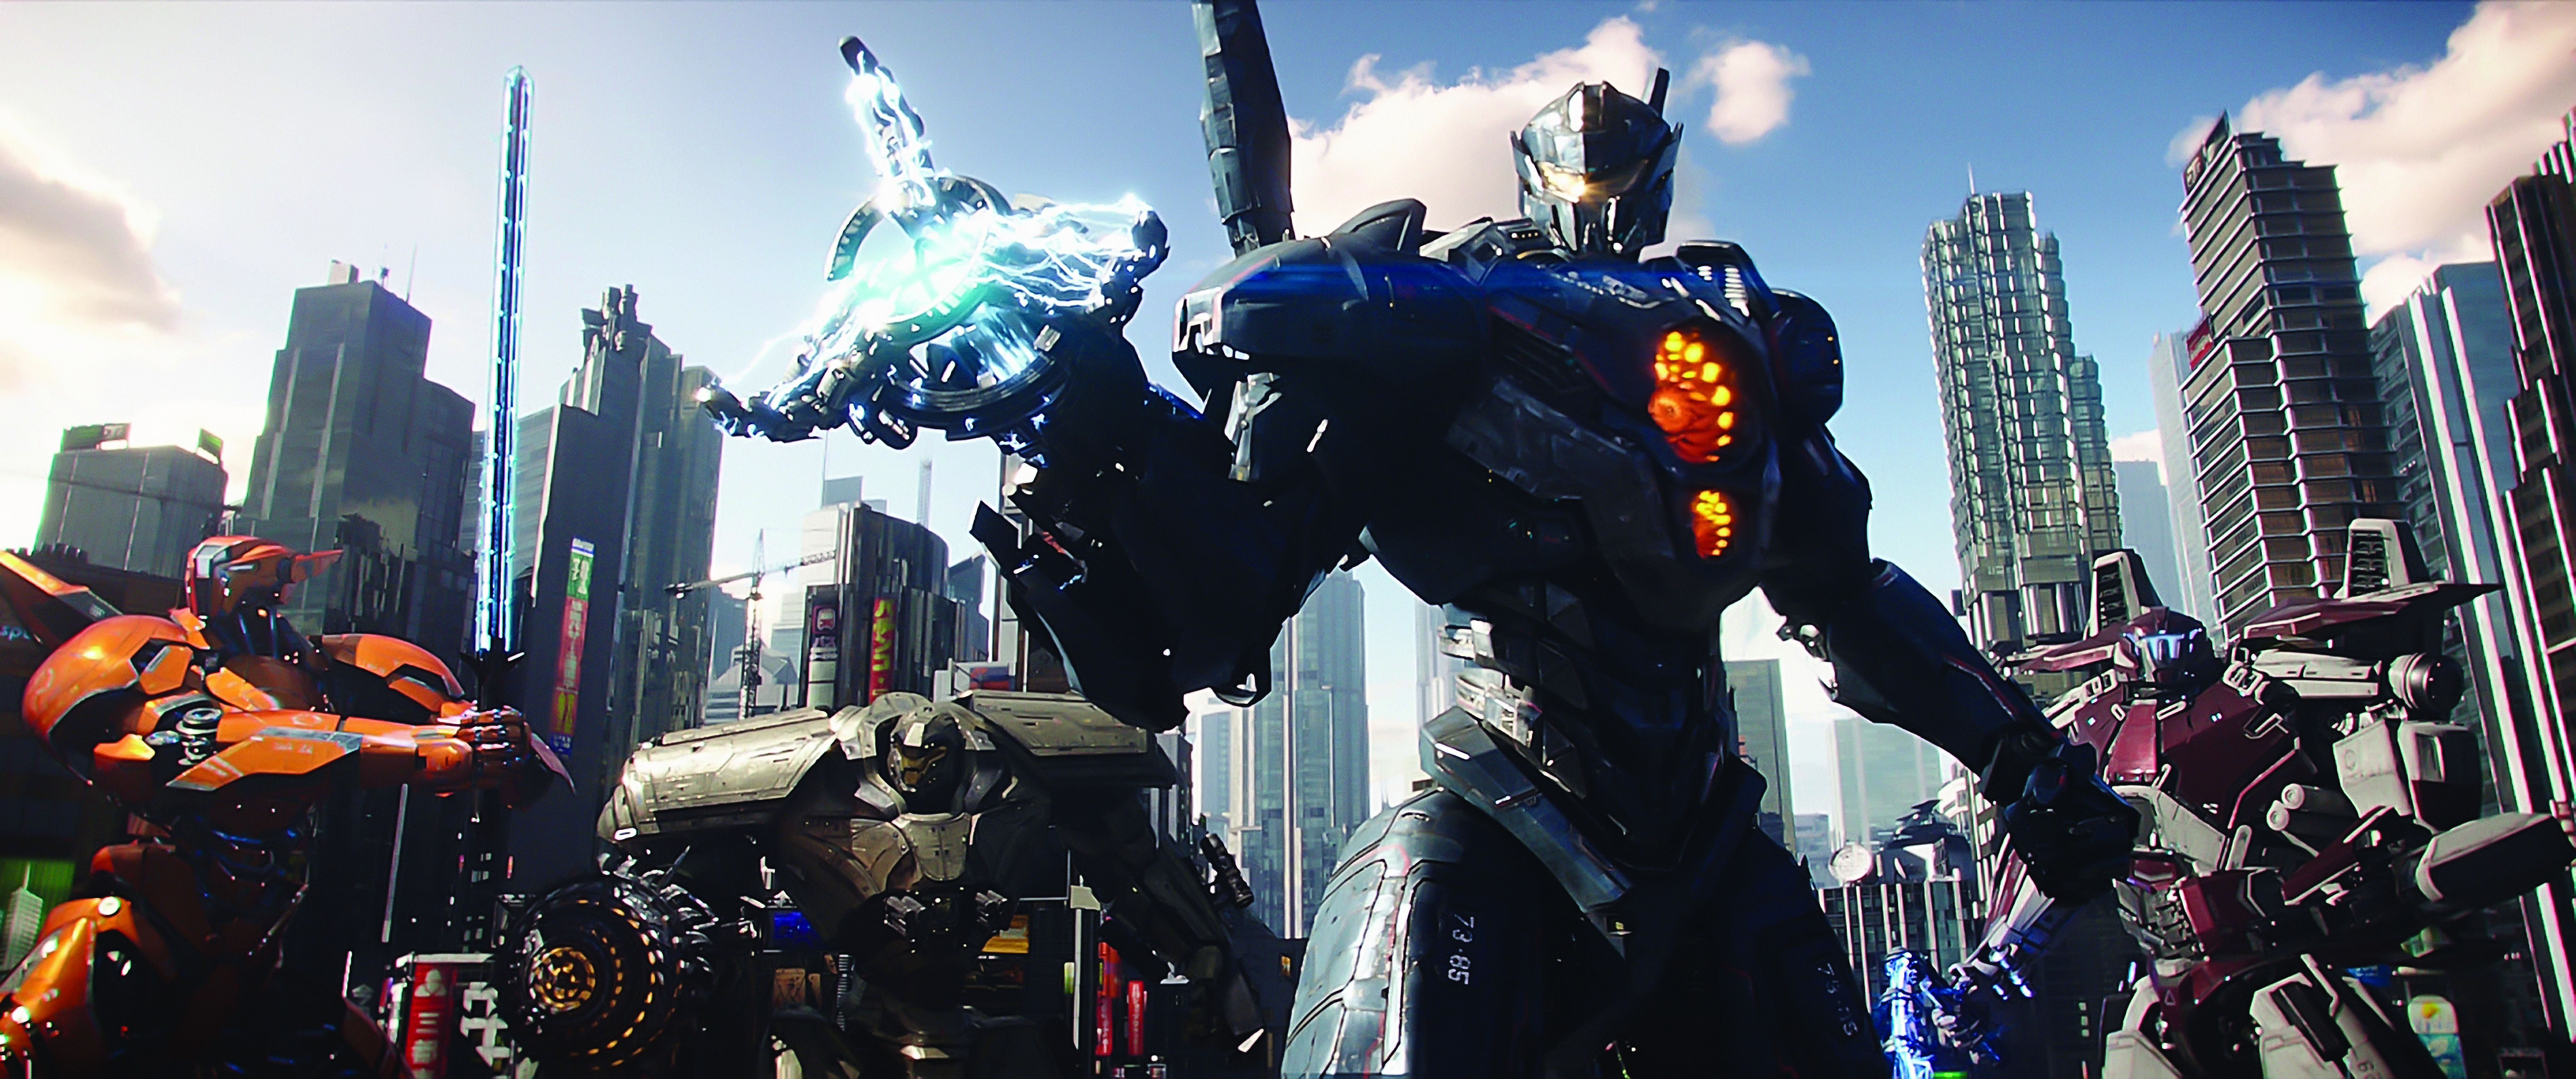 REVIEW: 'Pacific Rim: Uprising'